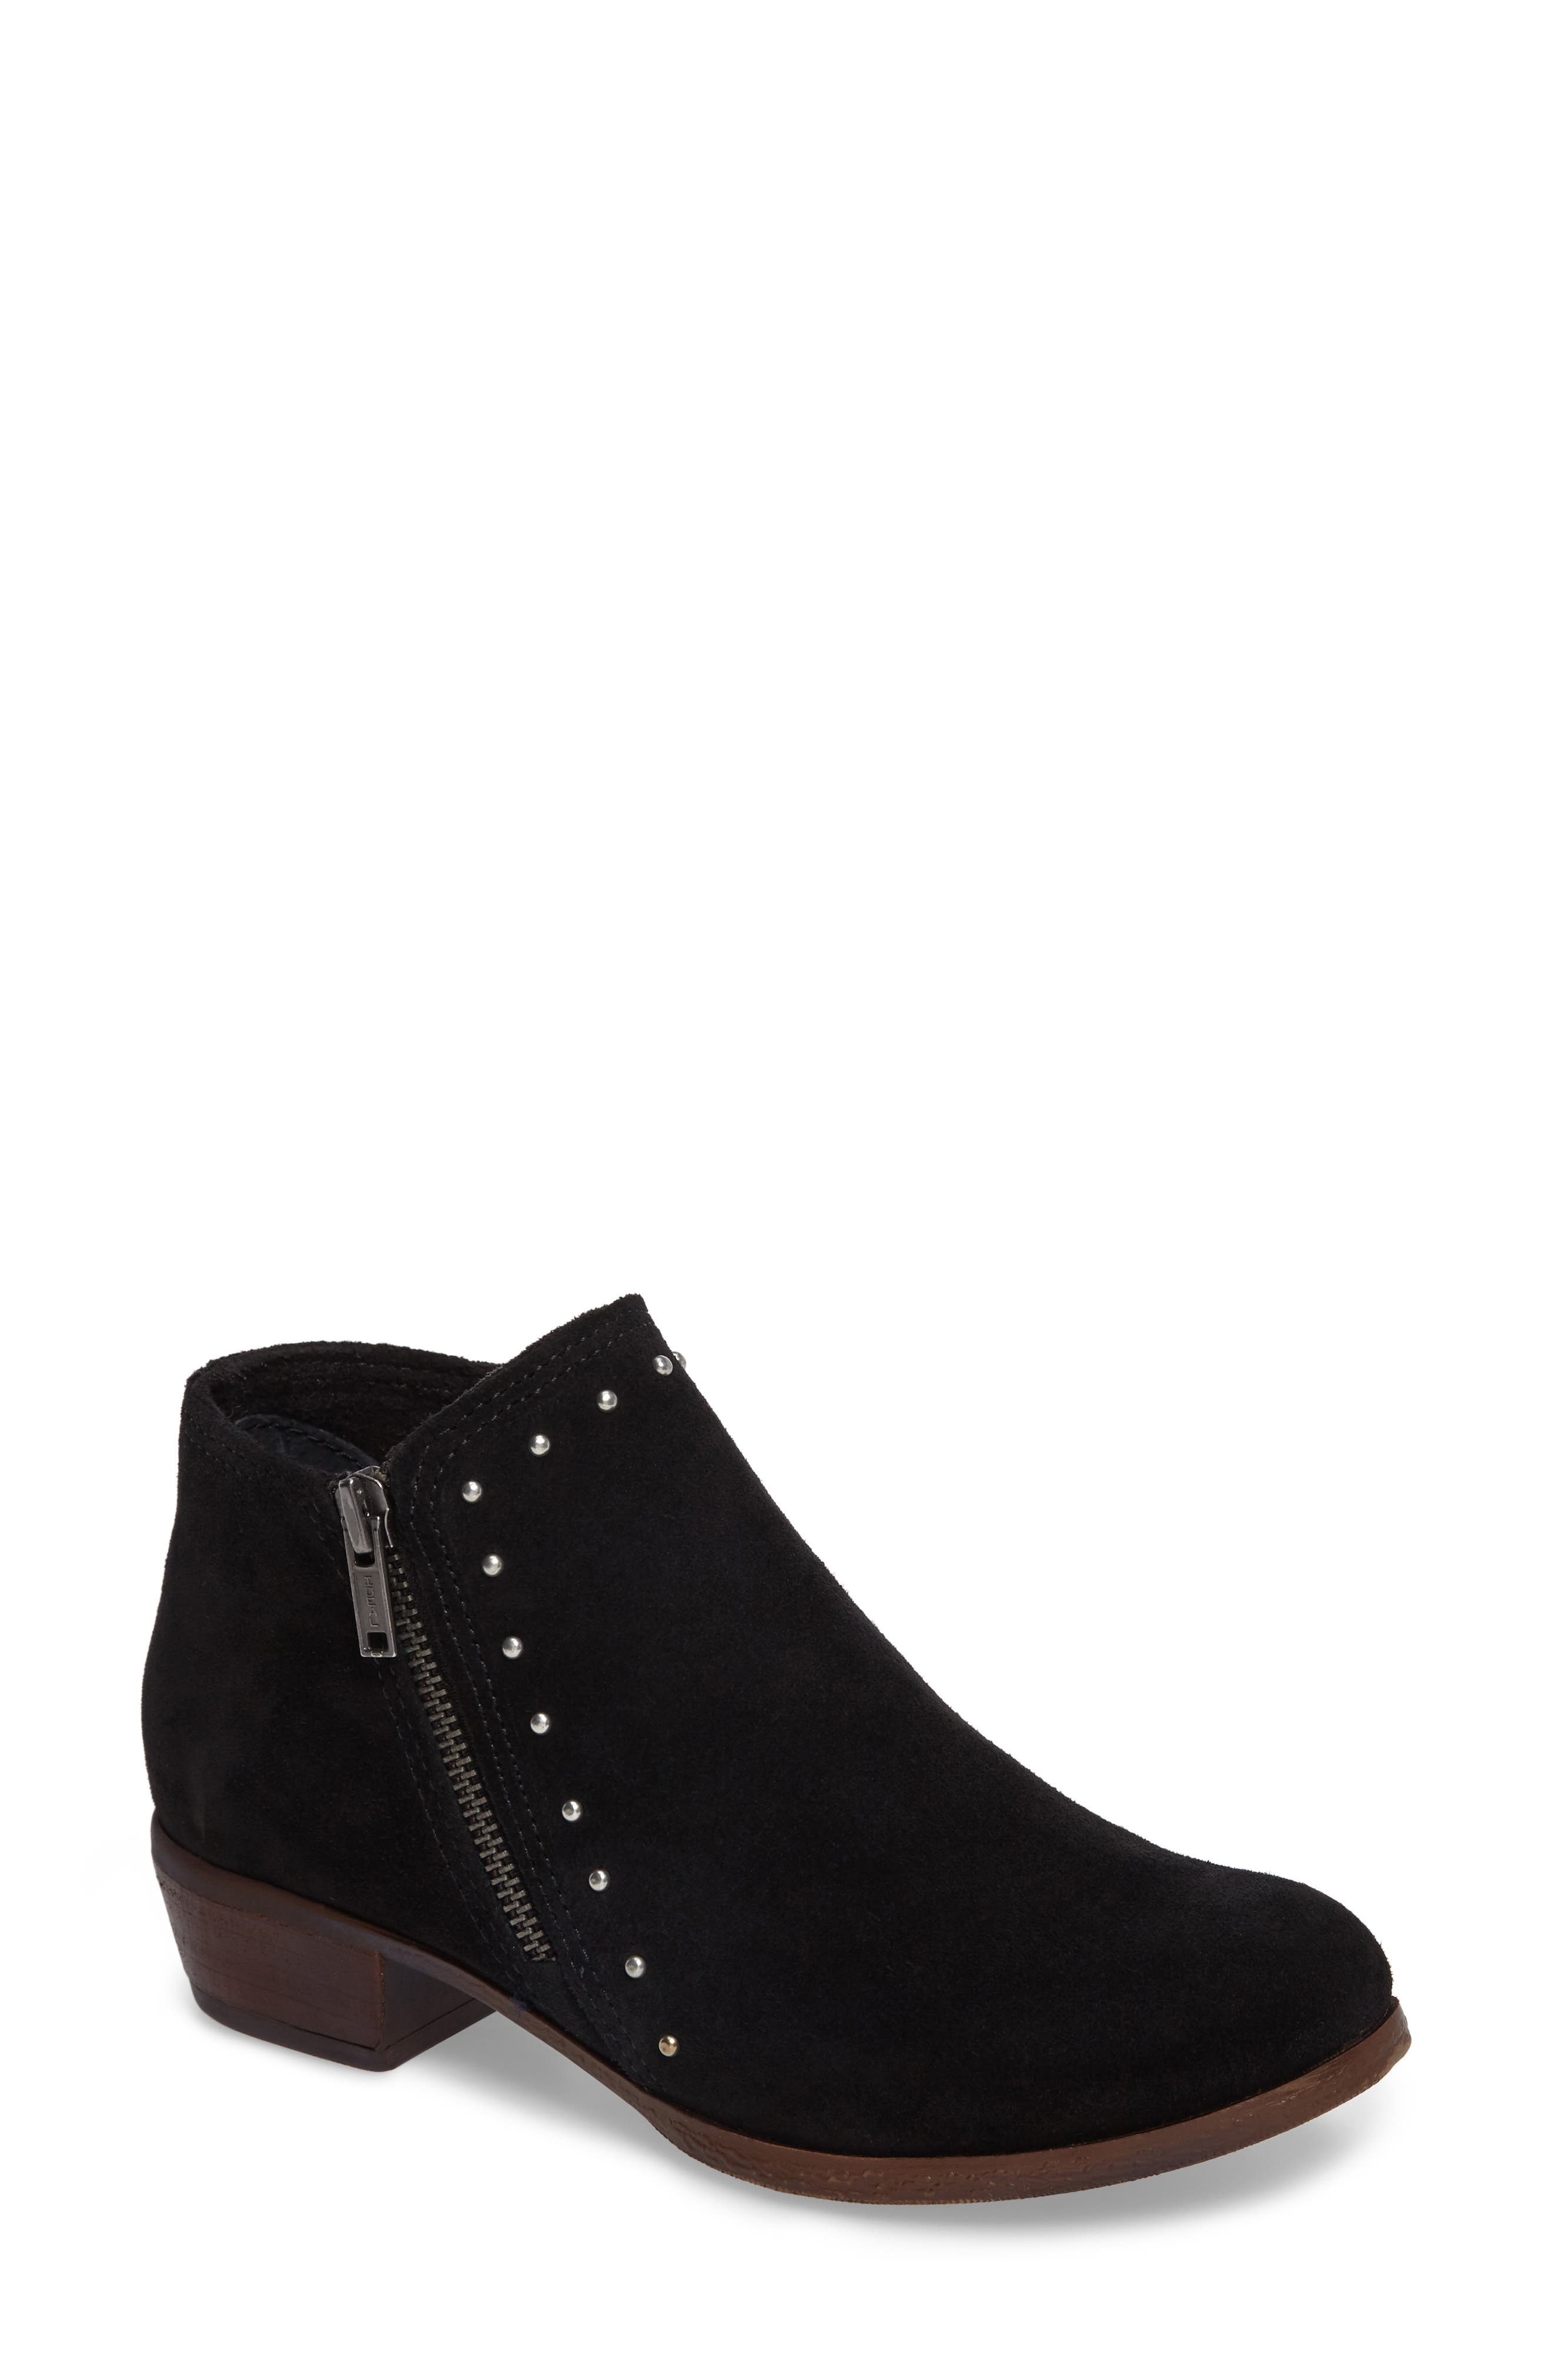 BRIE STUDDED BOOTIE